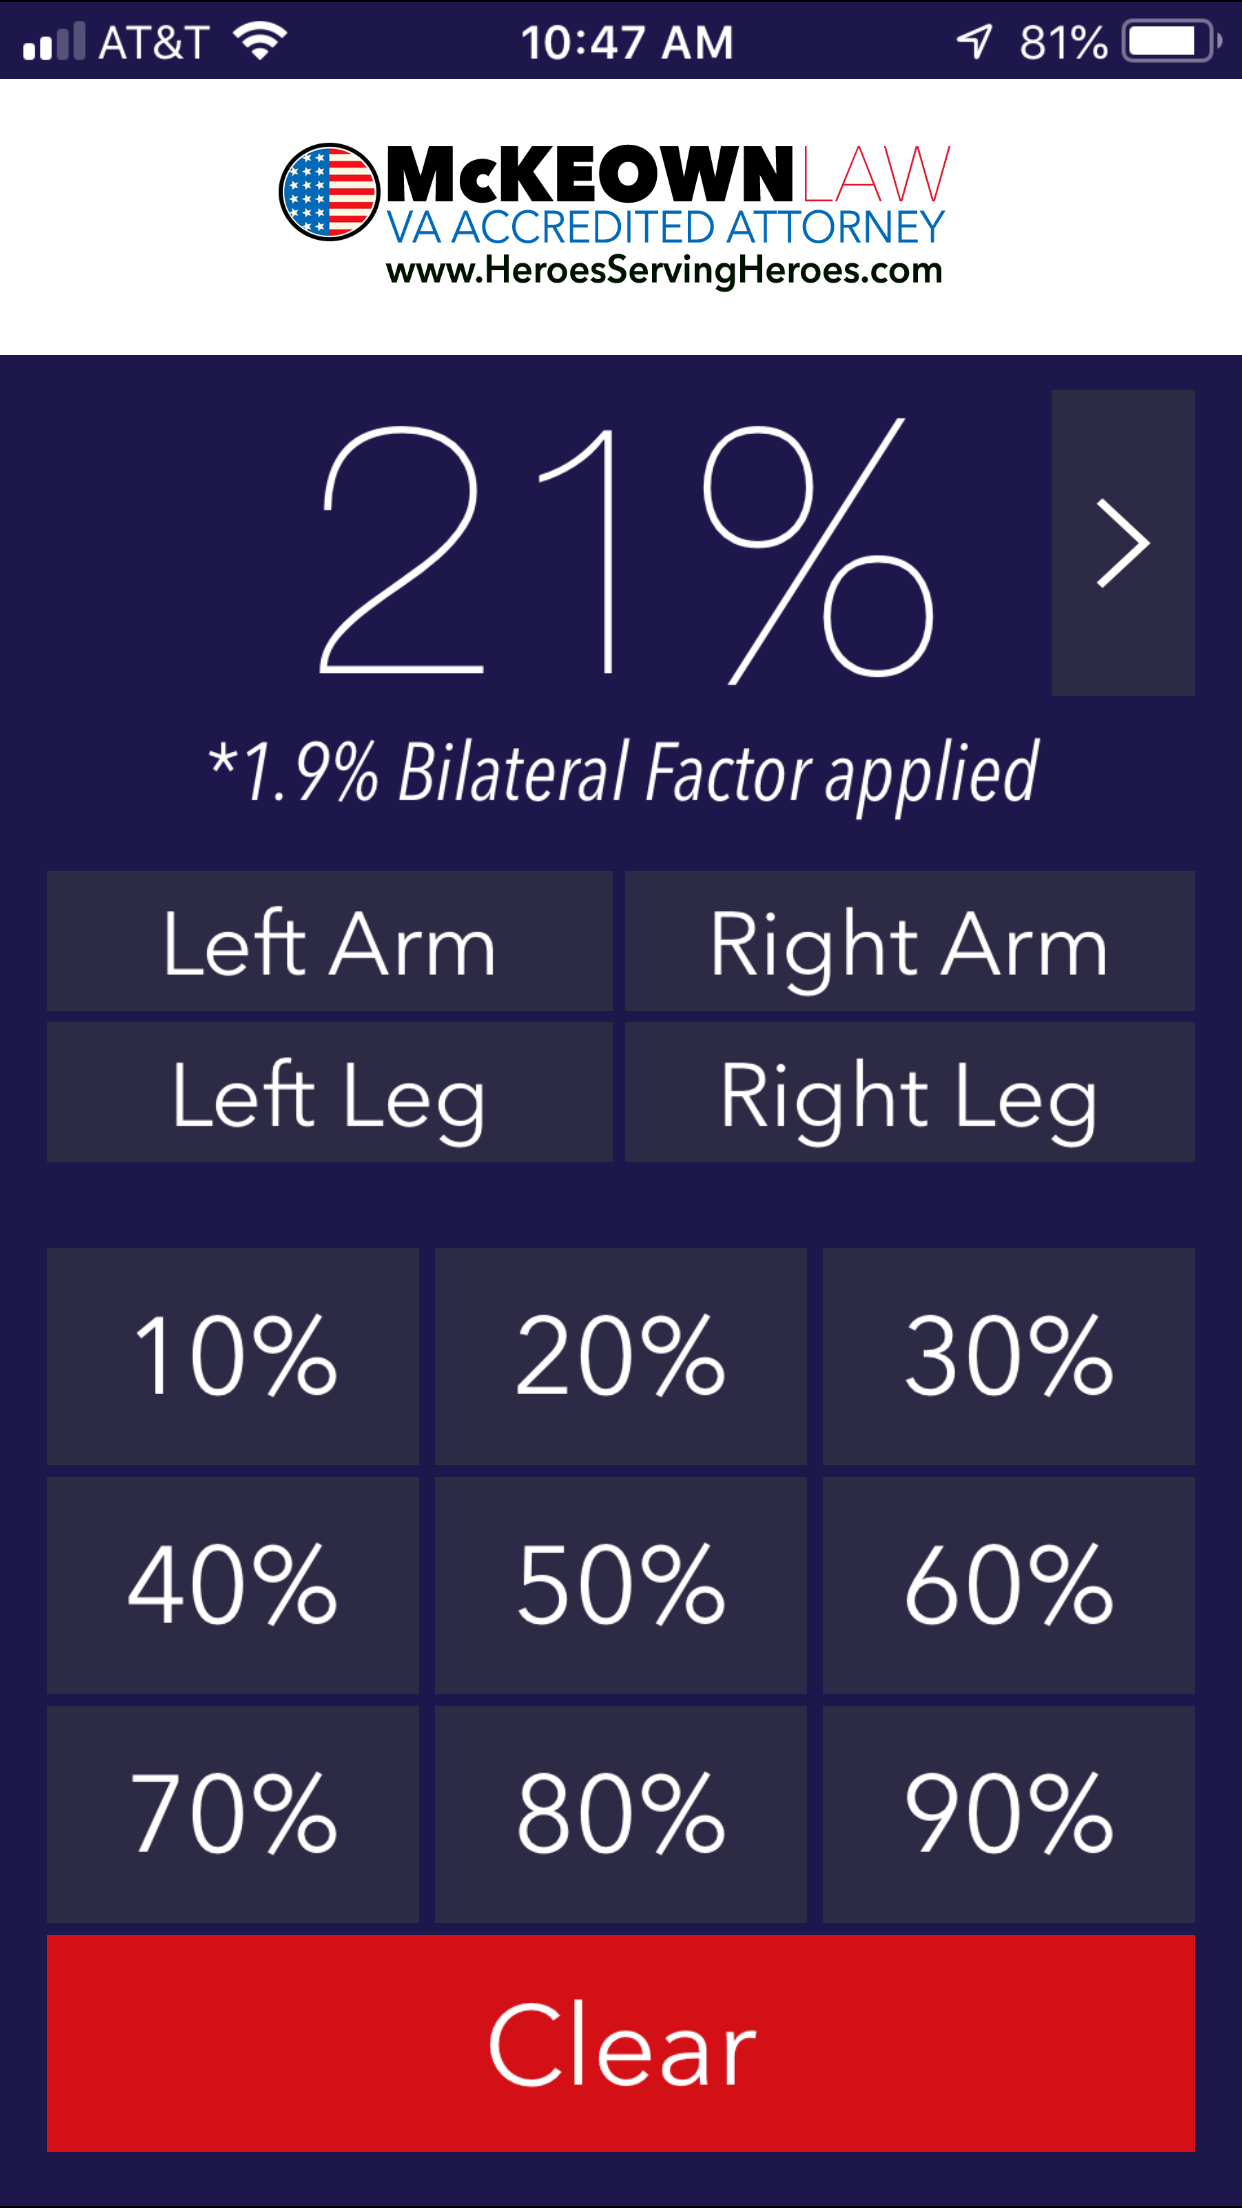 MULTIPLE RATINGS FOR KNEE ISSUES QUESTION - Appealing Your